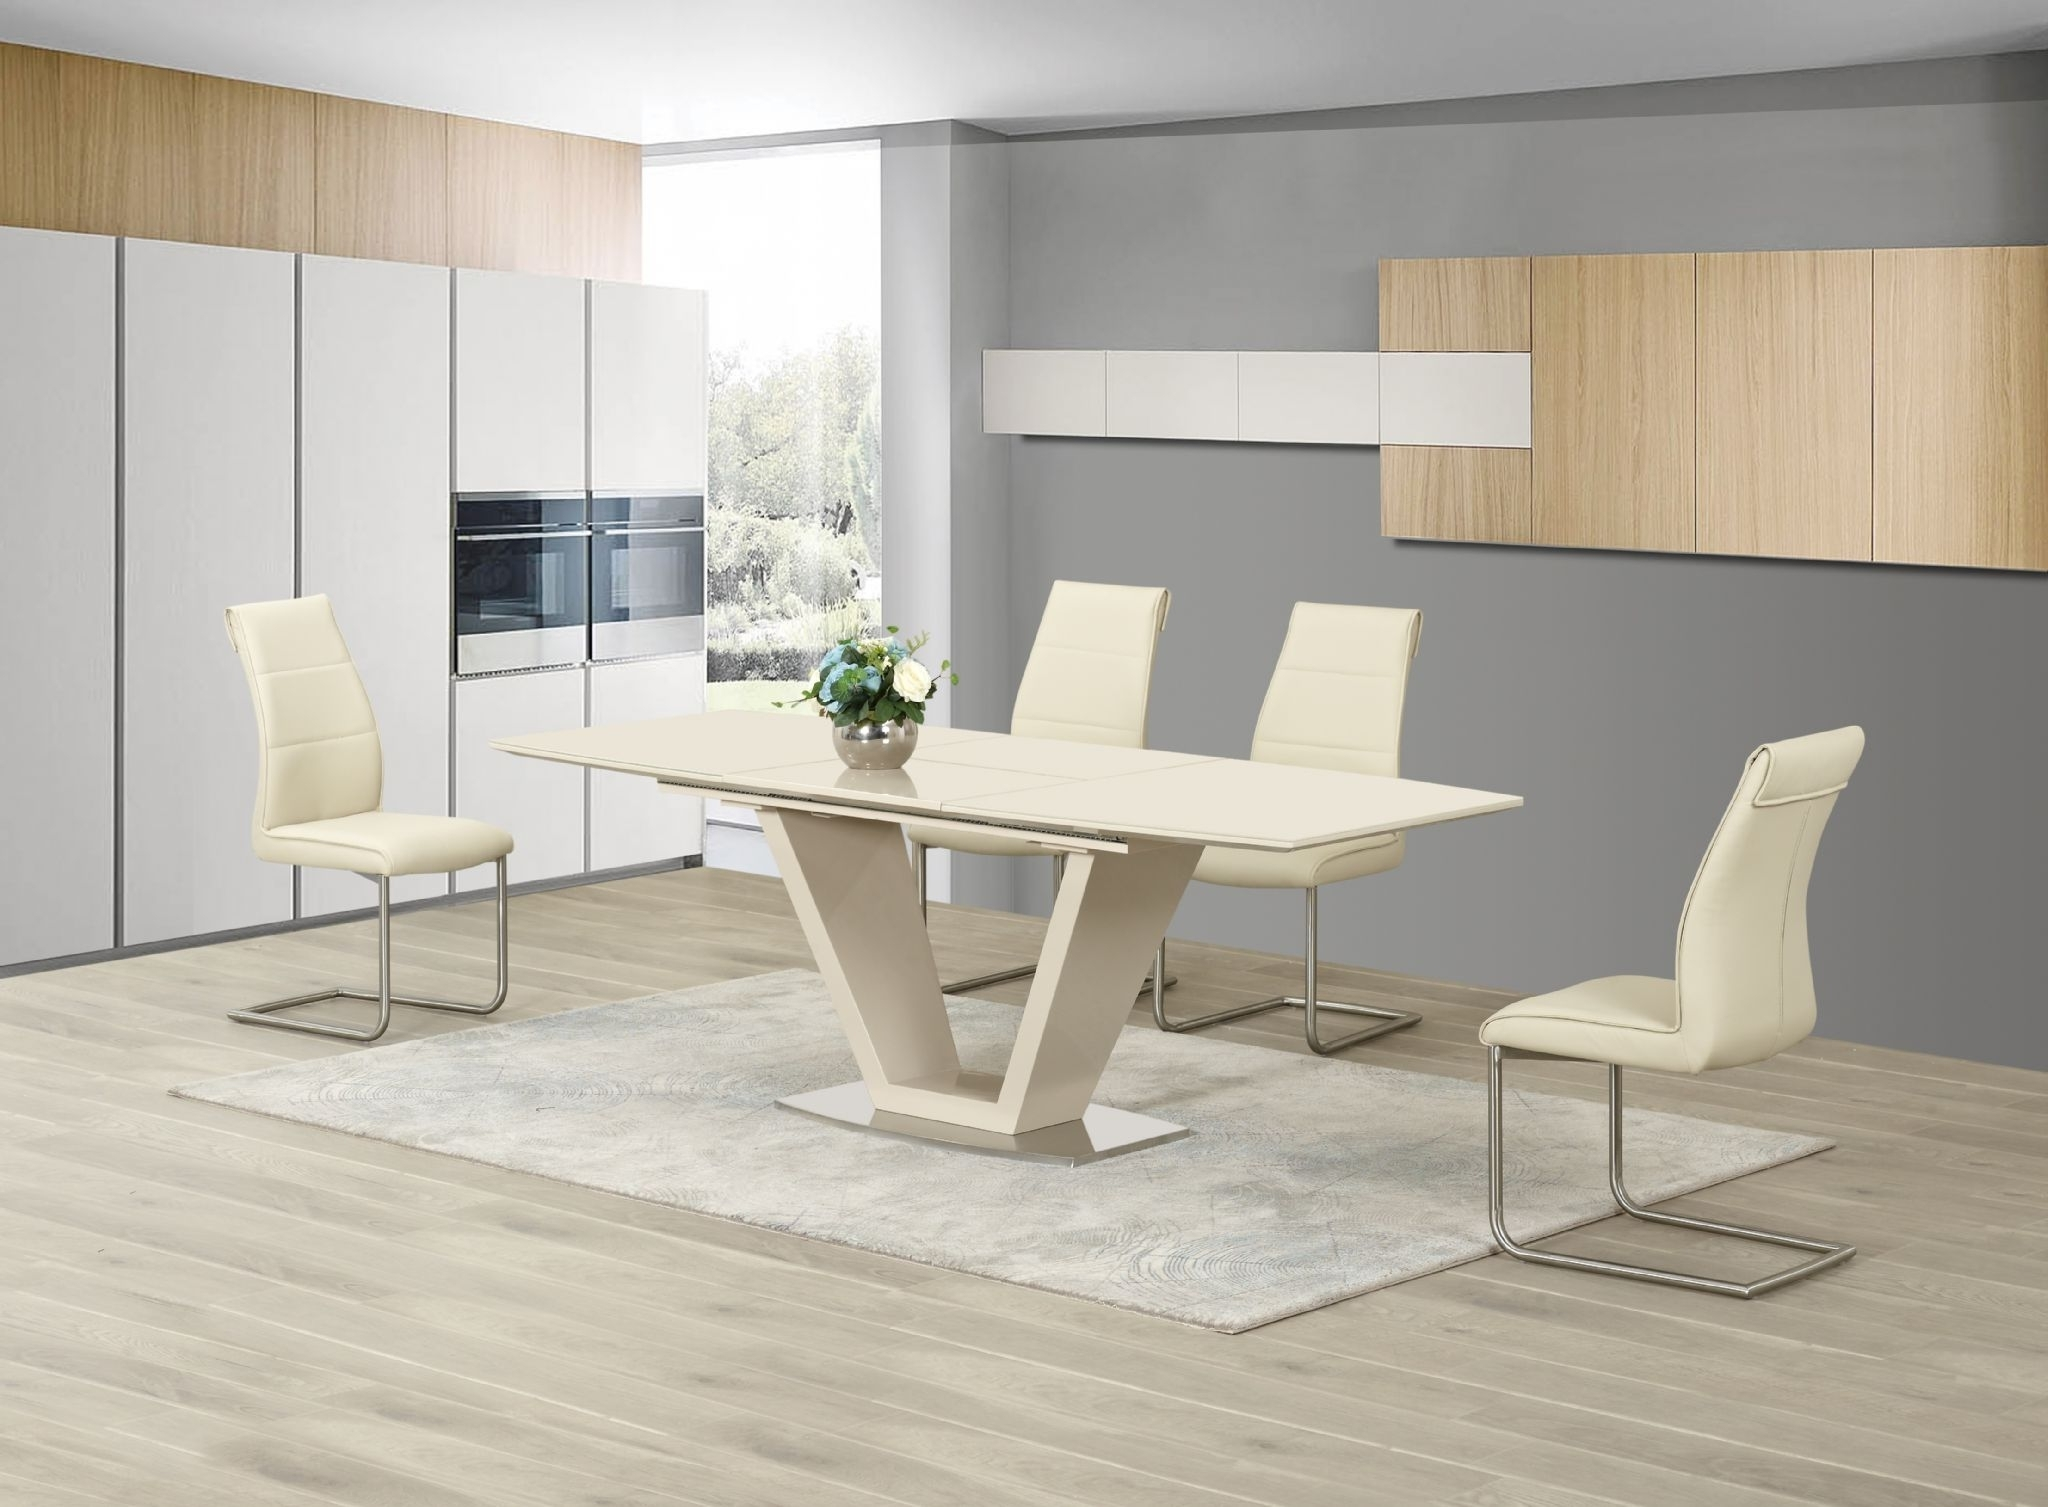 Ga Loriga Cream Gloss Glass Designer Dining Table Extending 160 220 Regarding Well Known High Gloss White Extending Dining Tables (Gallery 14 of 25)